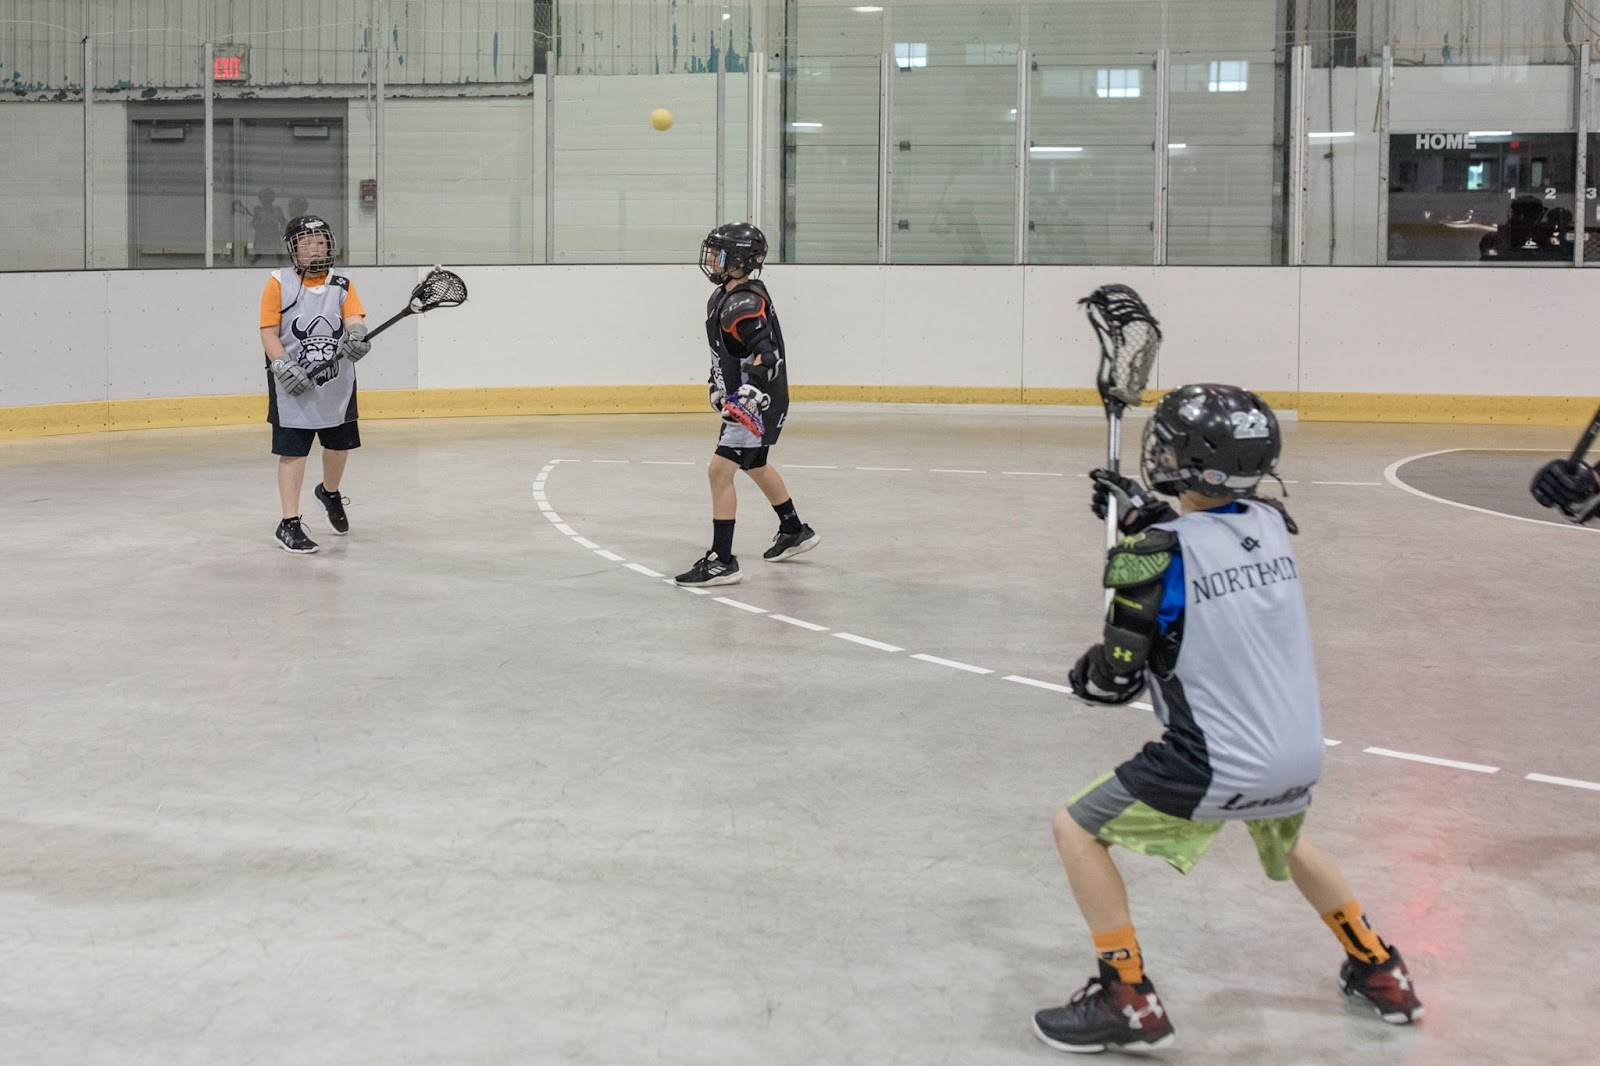 Players participating in a 3 vs. 3 small-sided game at an Orangeville Laxlife Camp